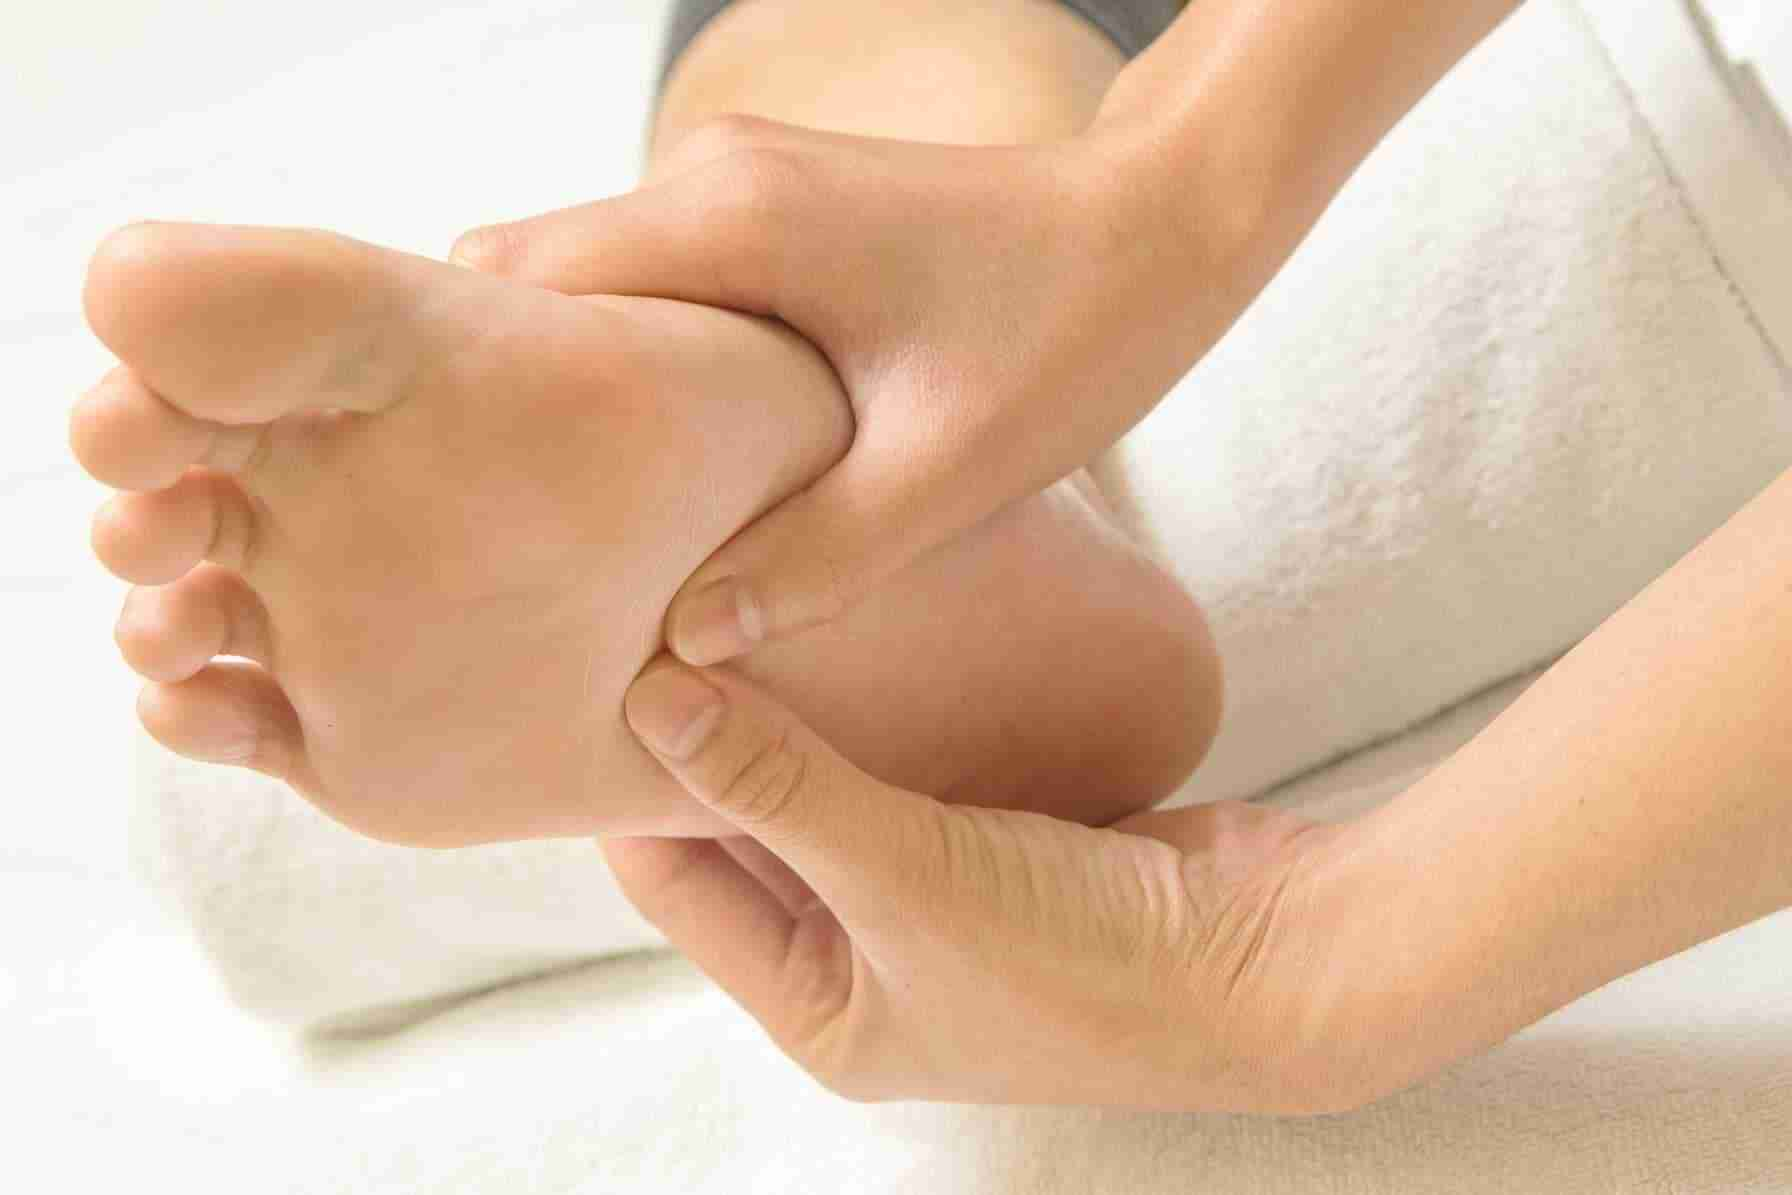 At Pure Relaxology, our foot reflexology focuses on pressure points to release tensions in your body